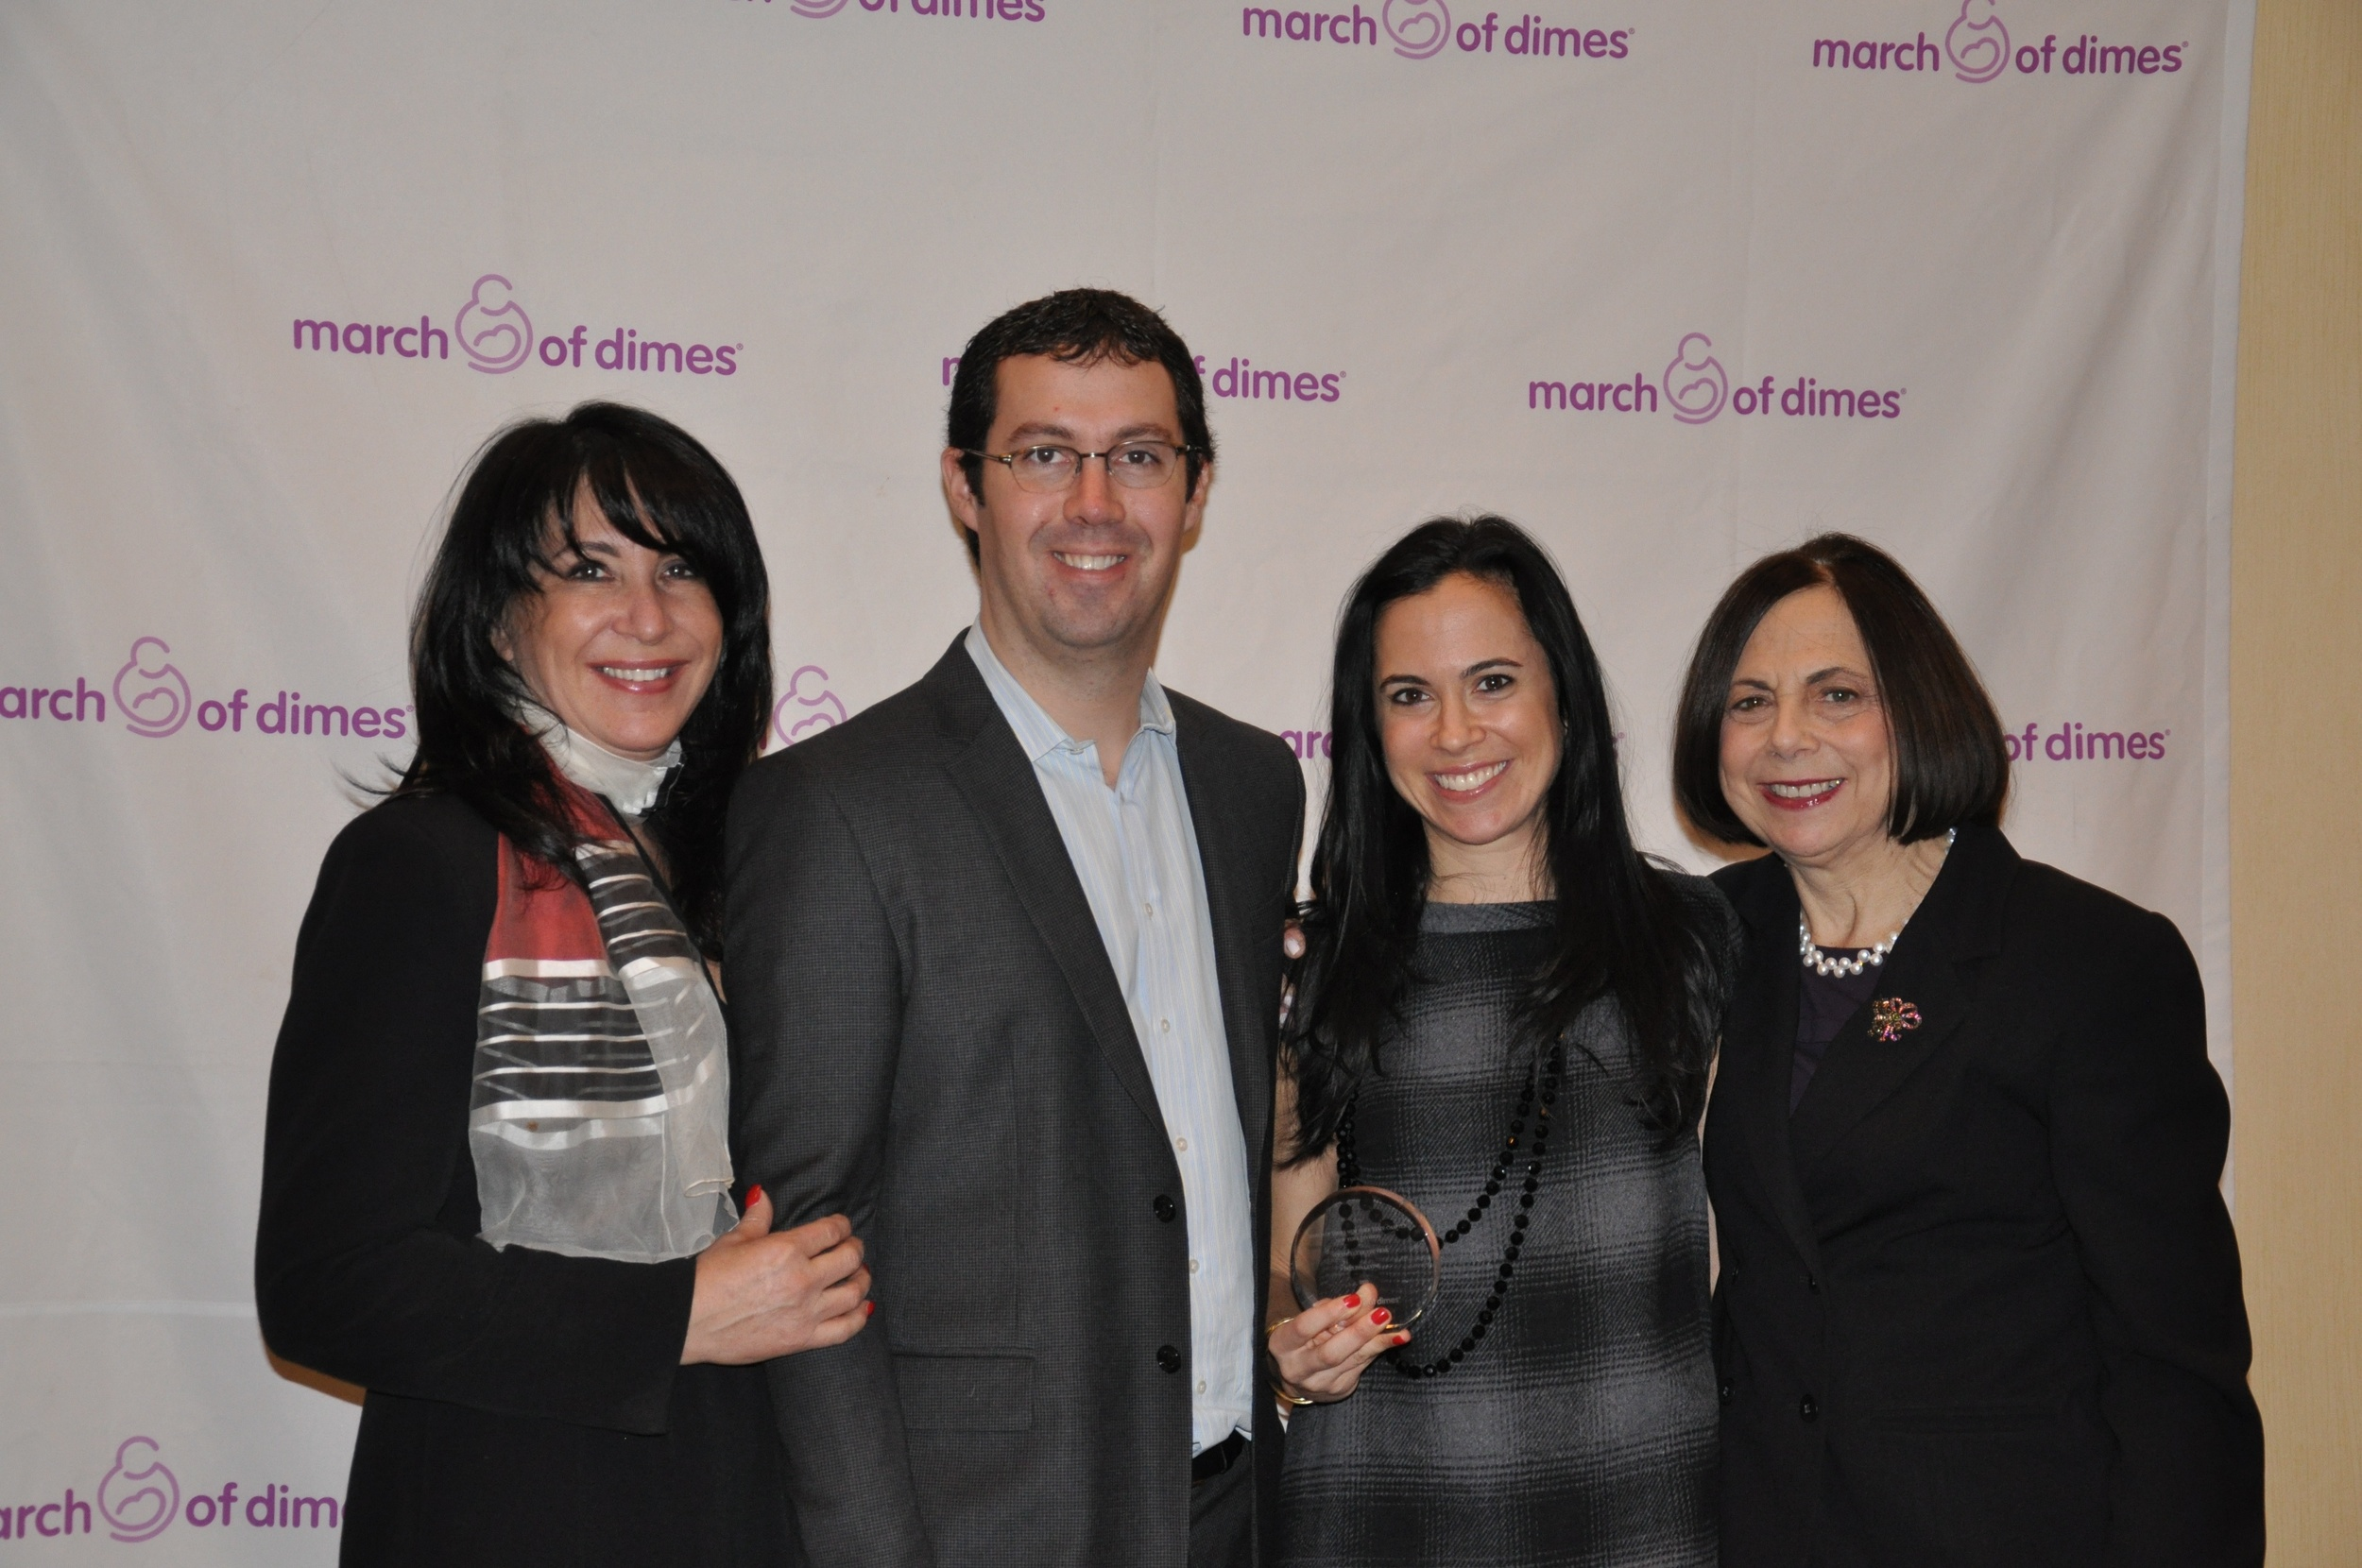 sharyn-levine-josh--paulina-levine-donna-berowitz-at-the-2010-volunteer-of-the-year-awards_6870304554_o.jpg